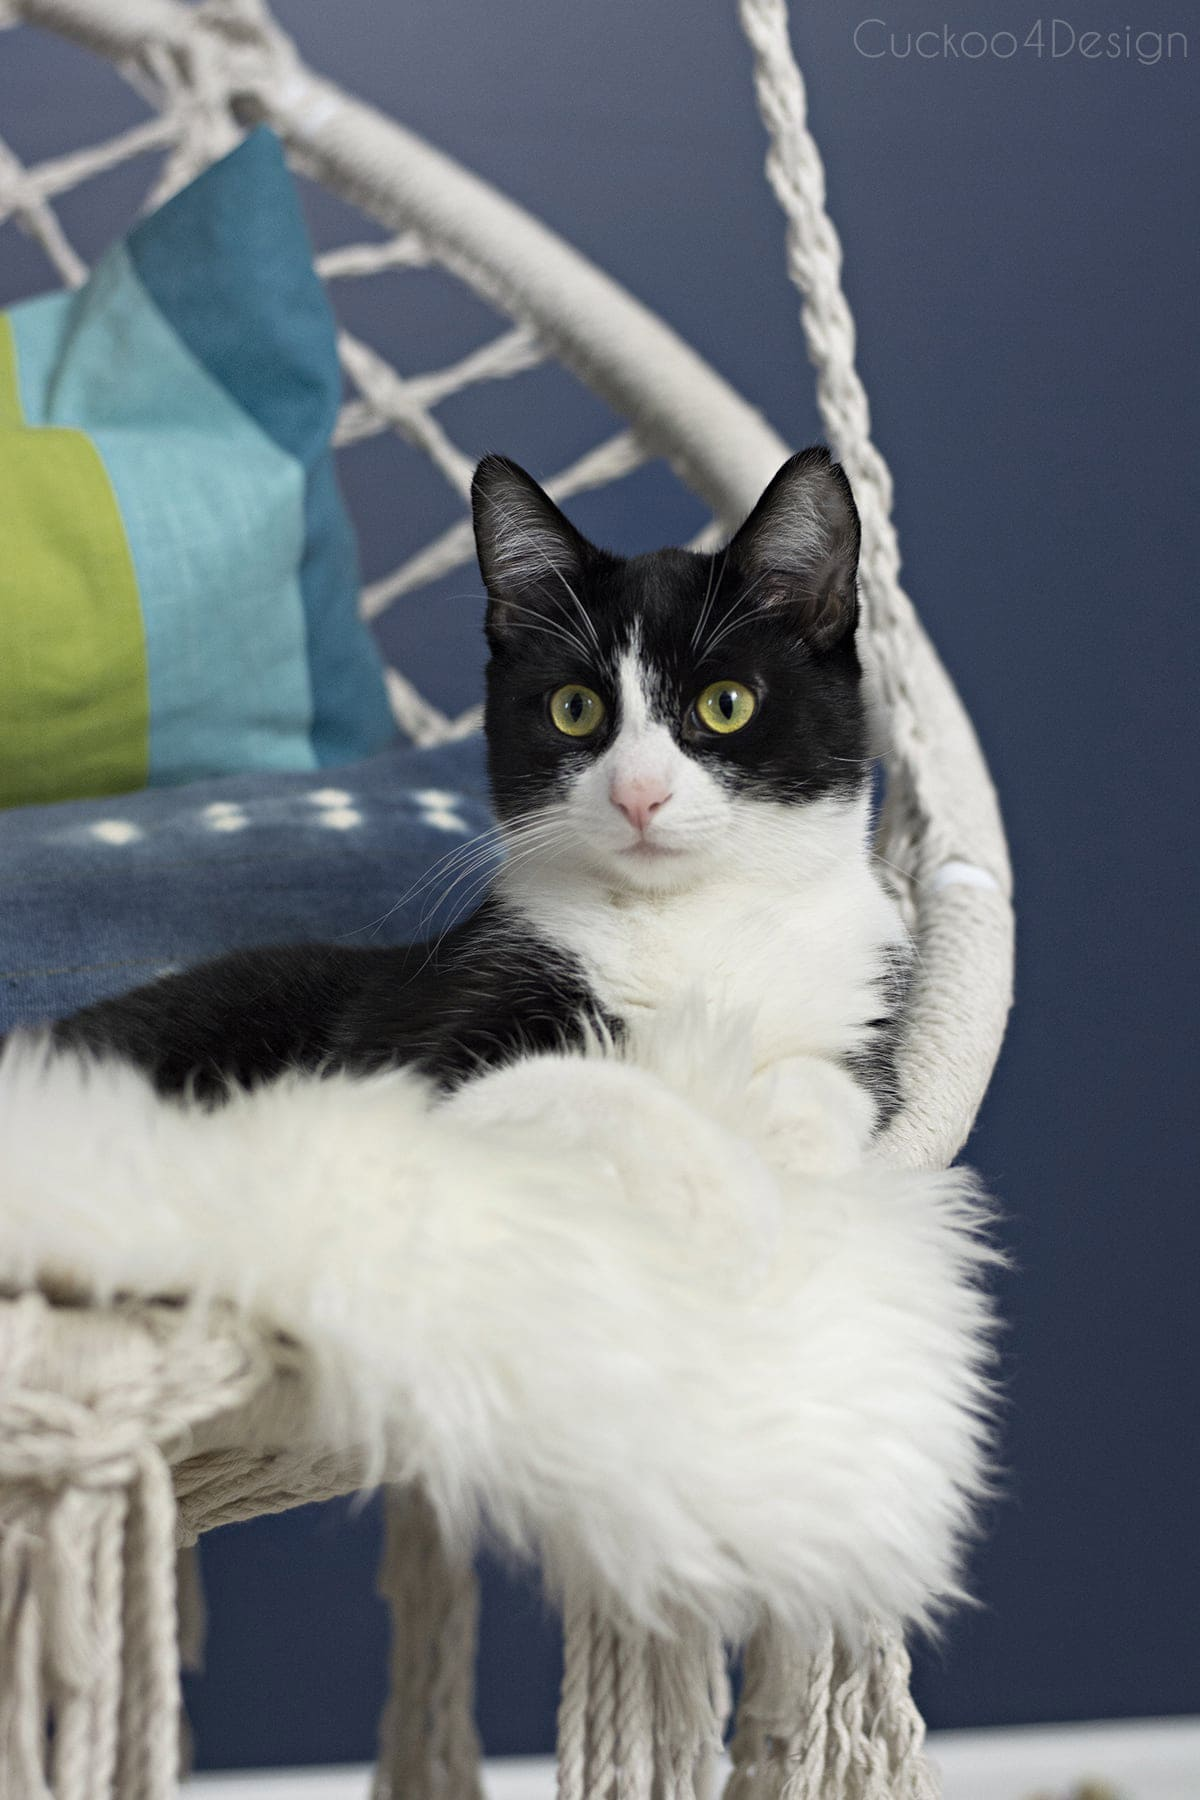 tuxedo cat lounging on macrame hanging chair in blue girls room